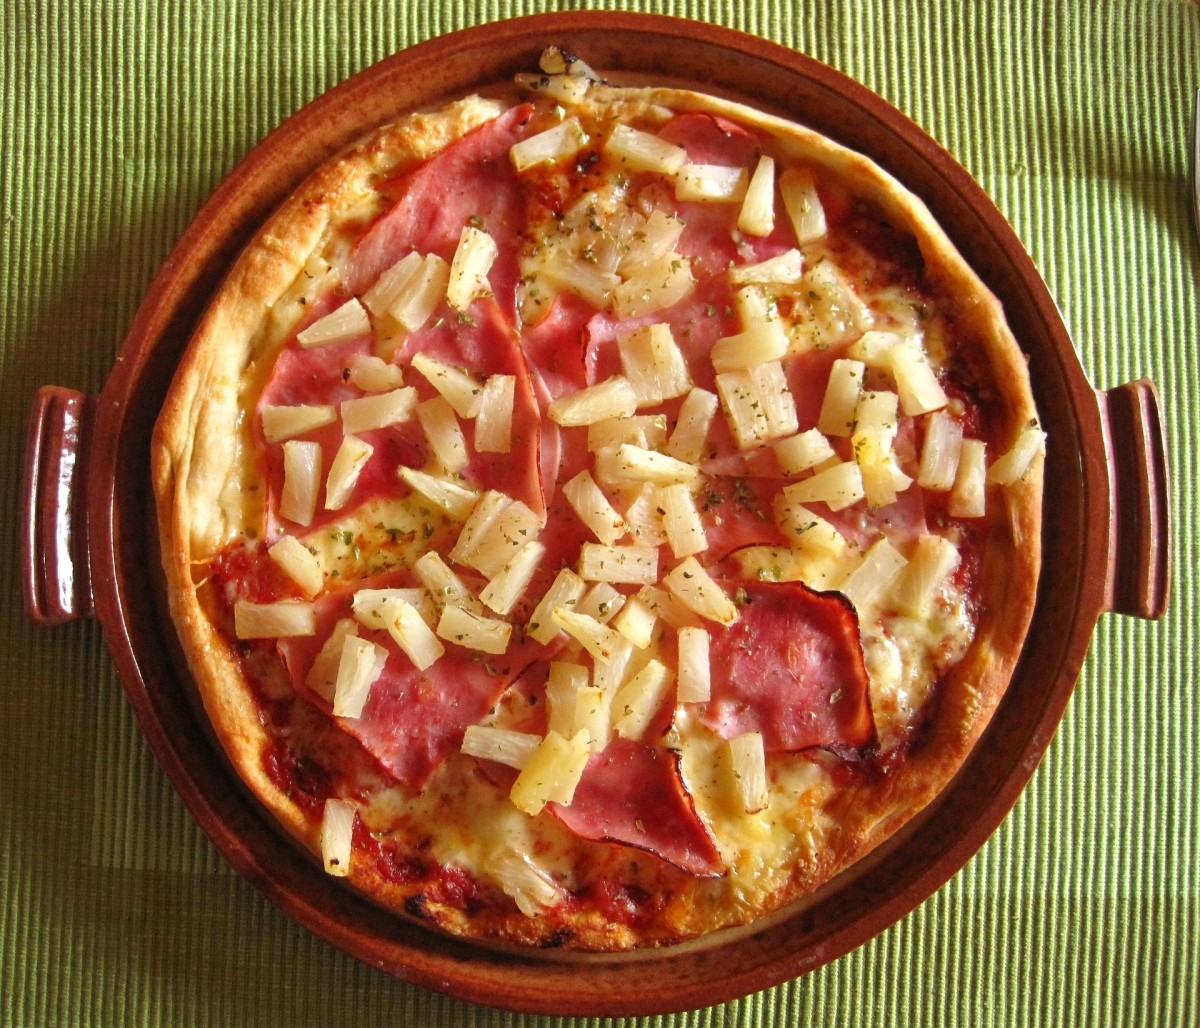 The only thing Hawaiian about a Hawaiian pizza is the pineapple on top. The ham and pineapple pizza was actually invented by a Canadian!